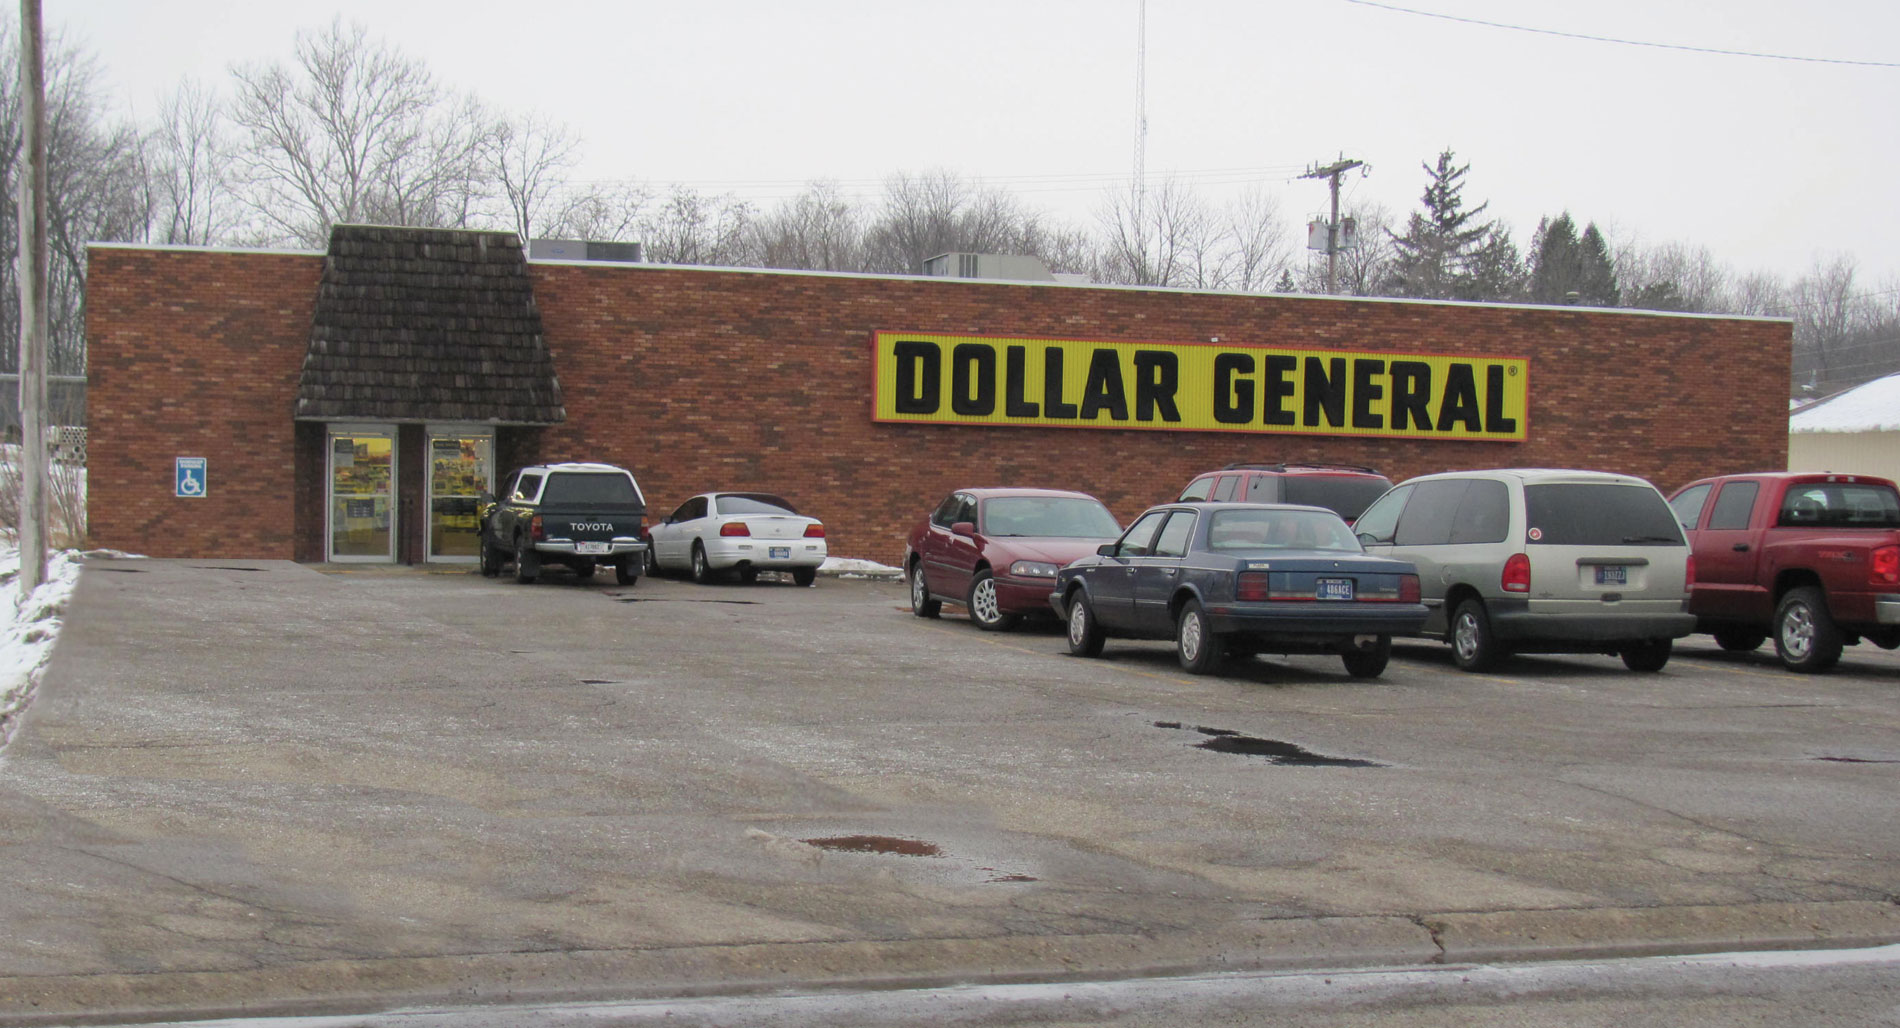 Dollar General of Warsaw